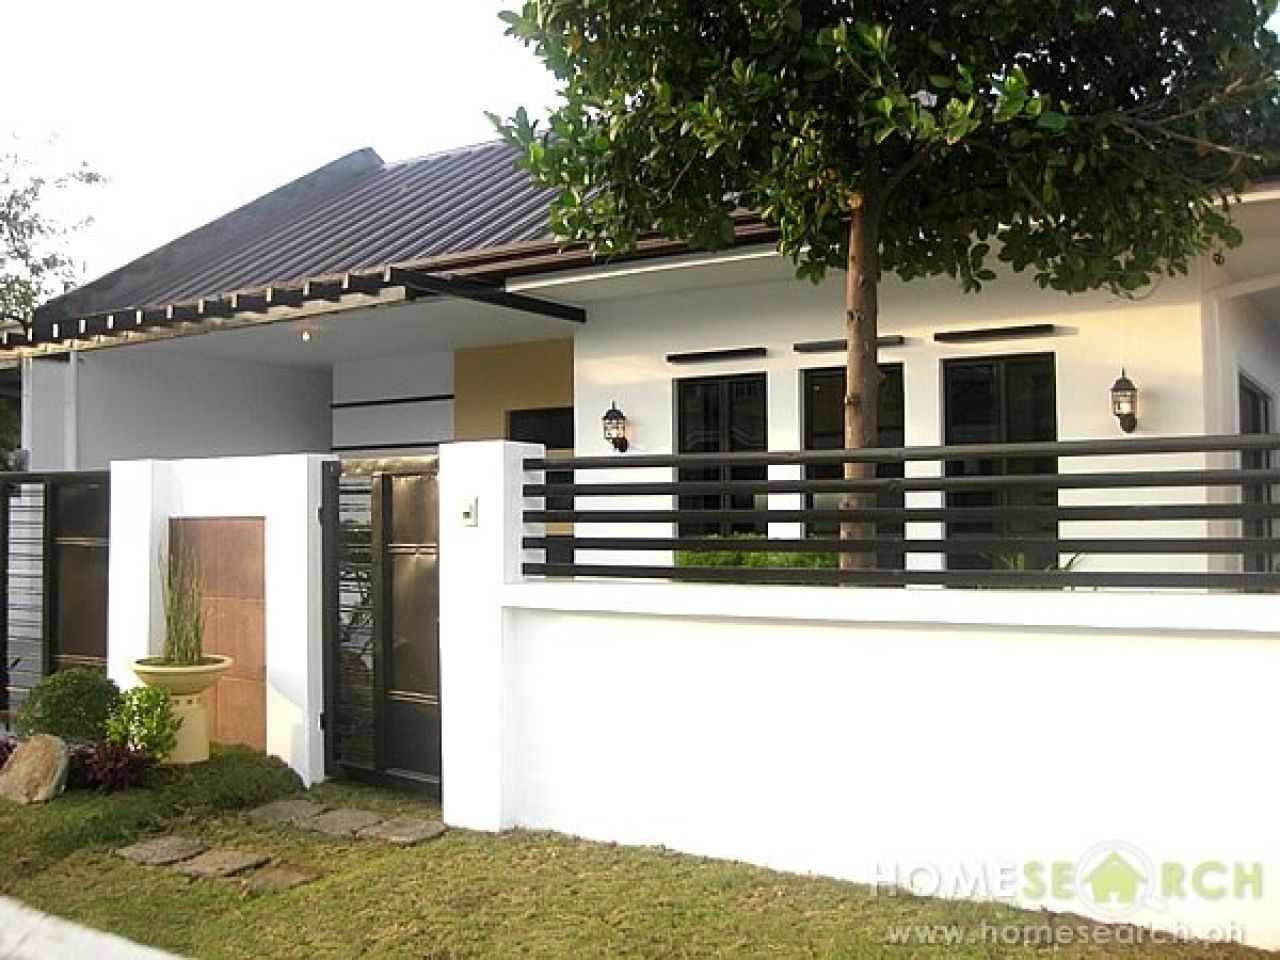 Modern Zen House Design Philippines Simple Small House Bungalow House Design Zen House Design Small House Design Philippines